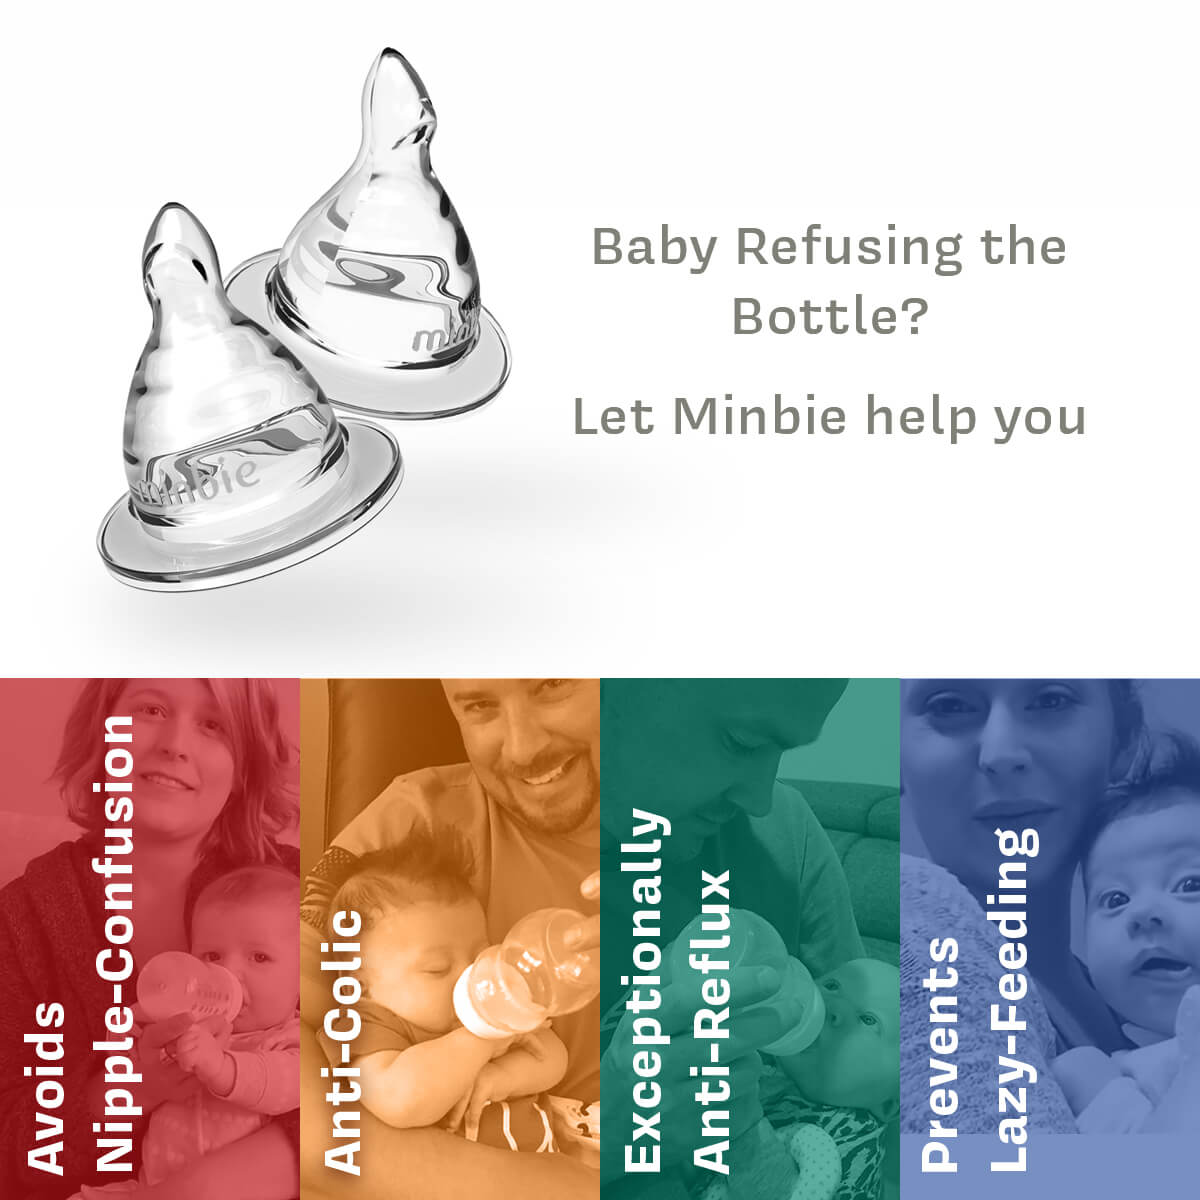 Baby refusing the bottle? Minbie can help.